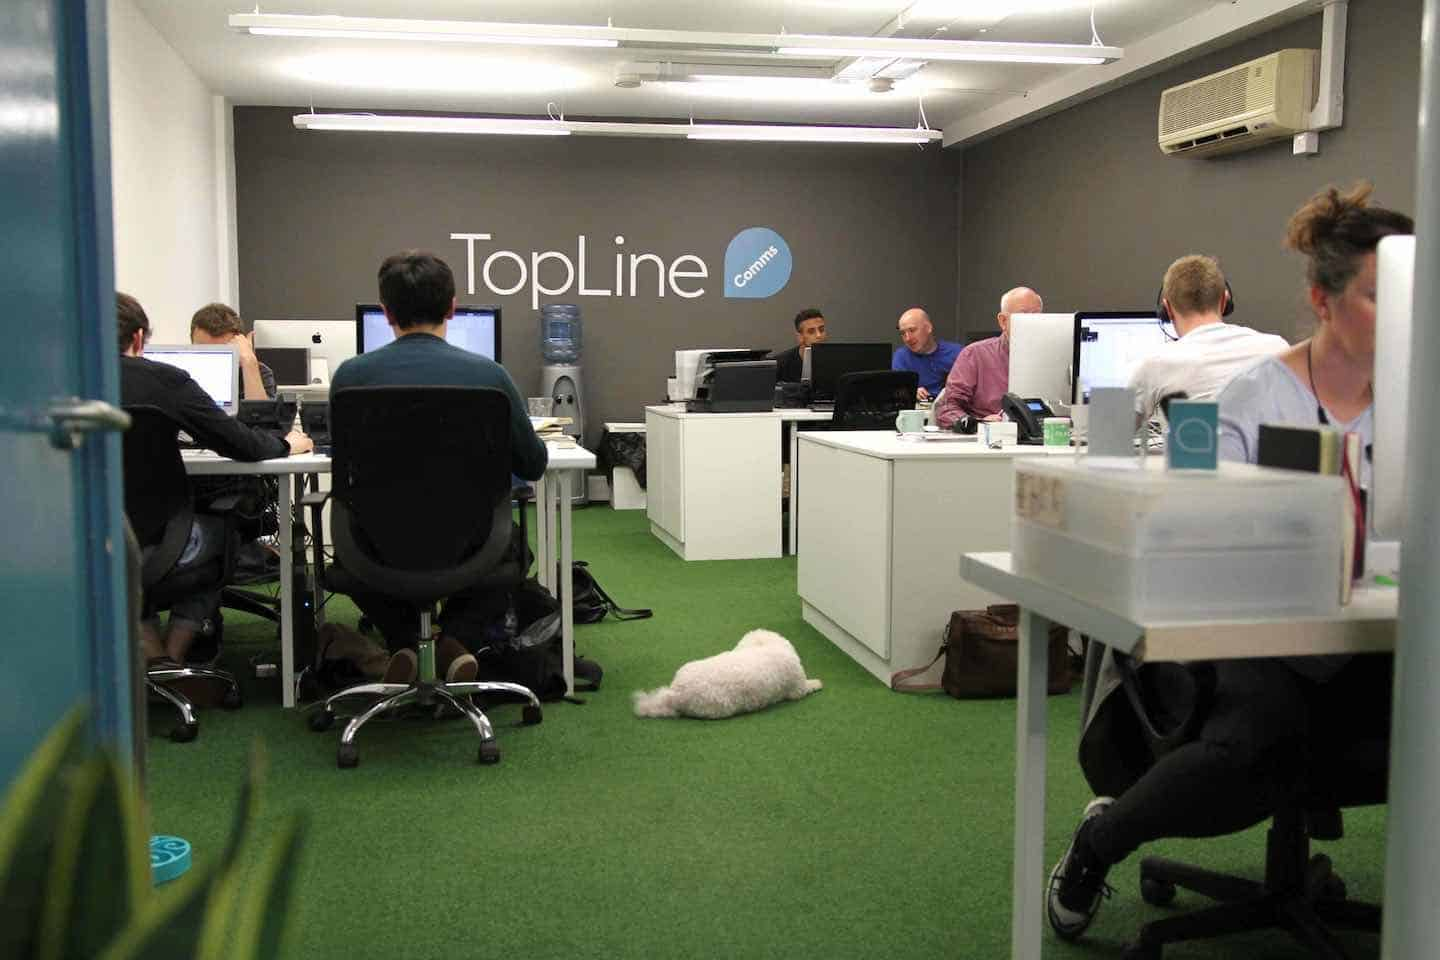 10 Top Tips for Your Taking Your Dog to Work in London from Topline Film -5